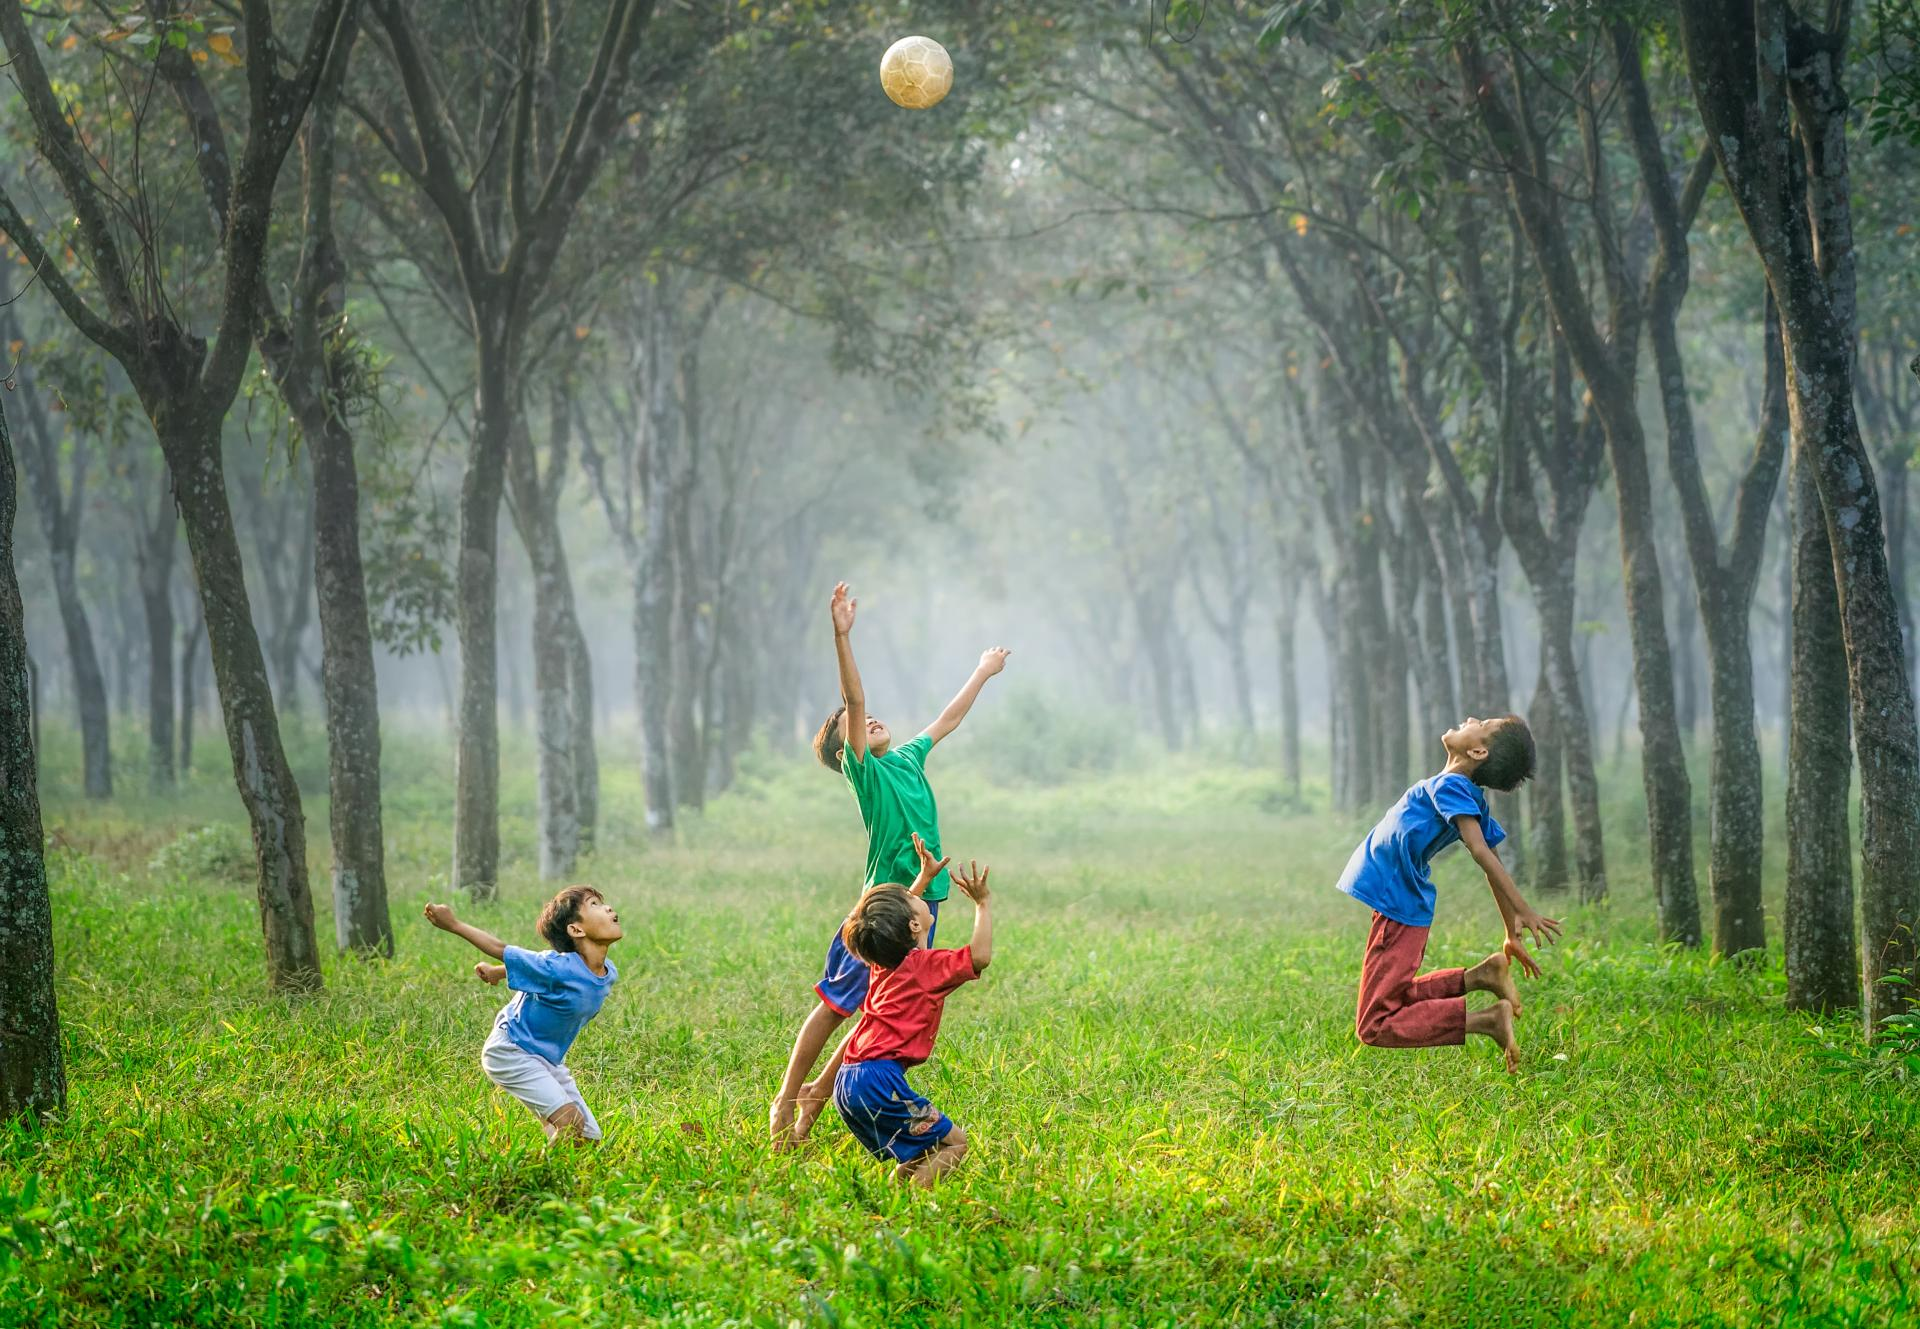 children playing football in a field